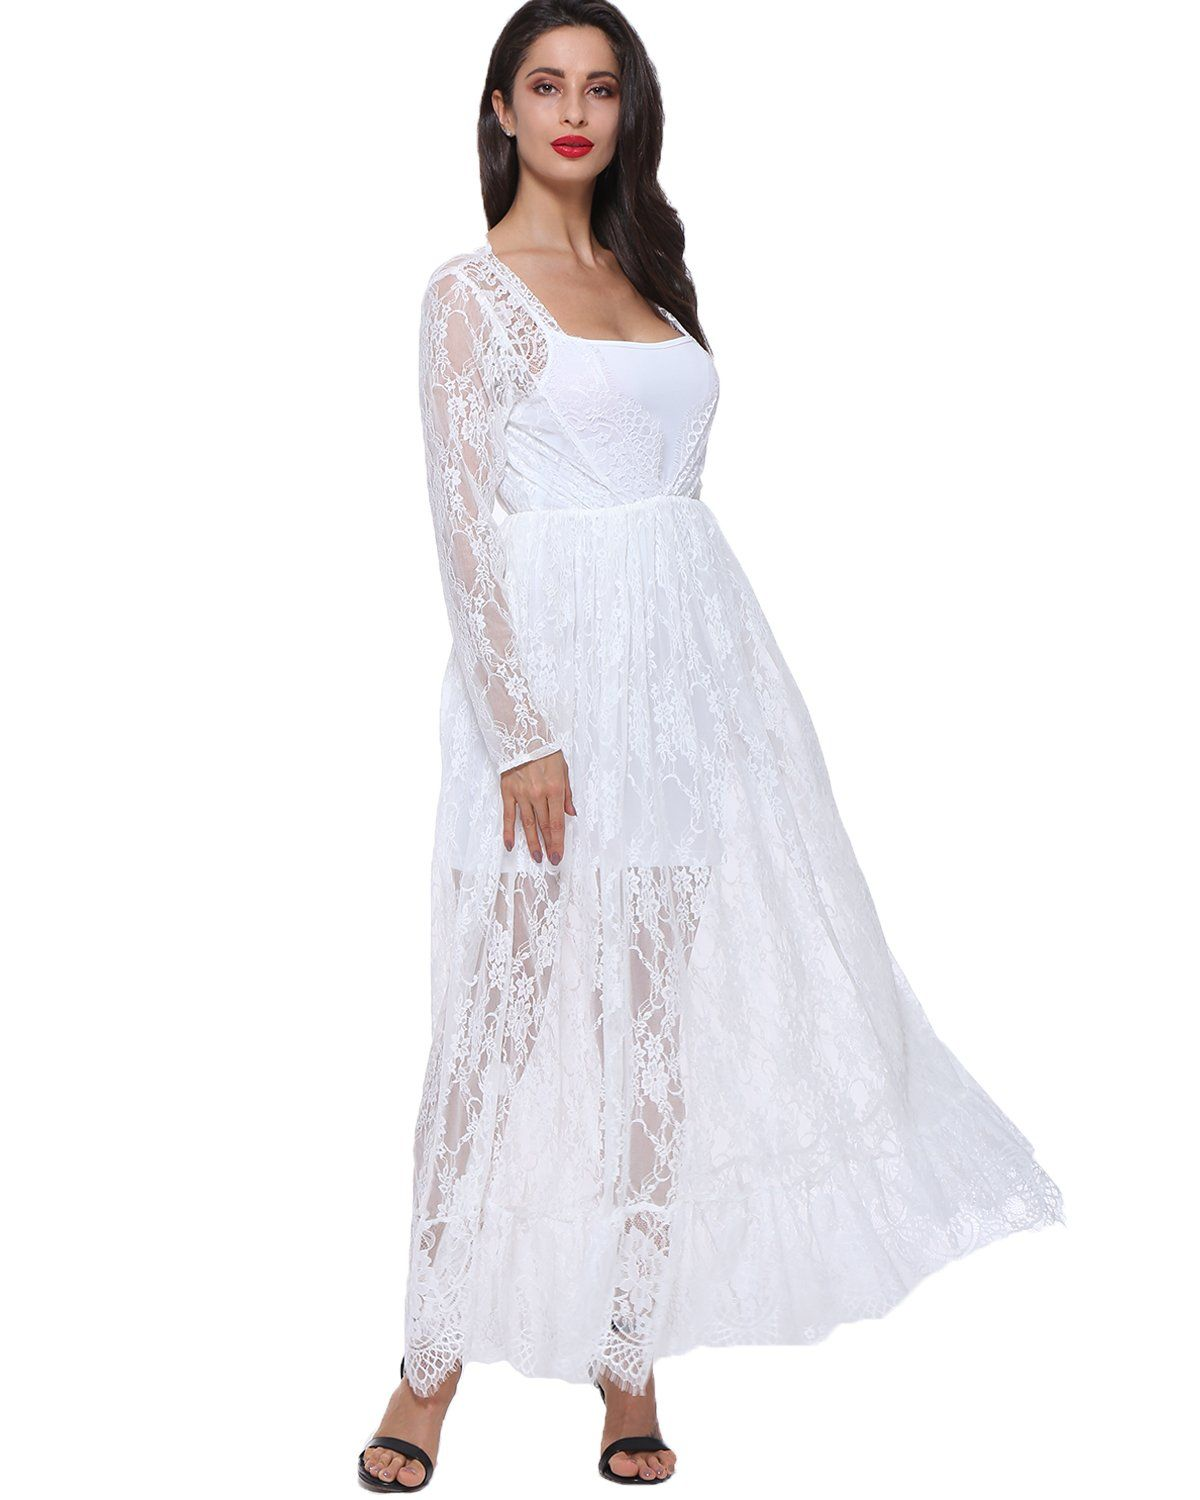 640a7720481 Maternity Fashion - GAMISS Maternity Sexy Lace Beach Dress Deep VNeck Long  Sleeve SeeThrough Maxi Dress White L   Click photo for more information.